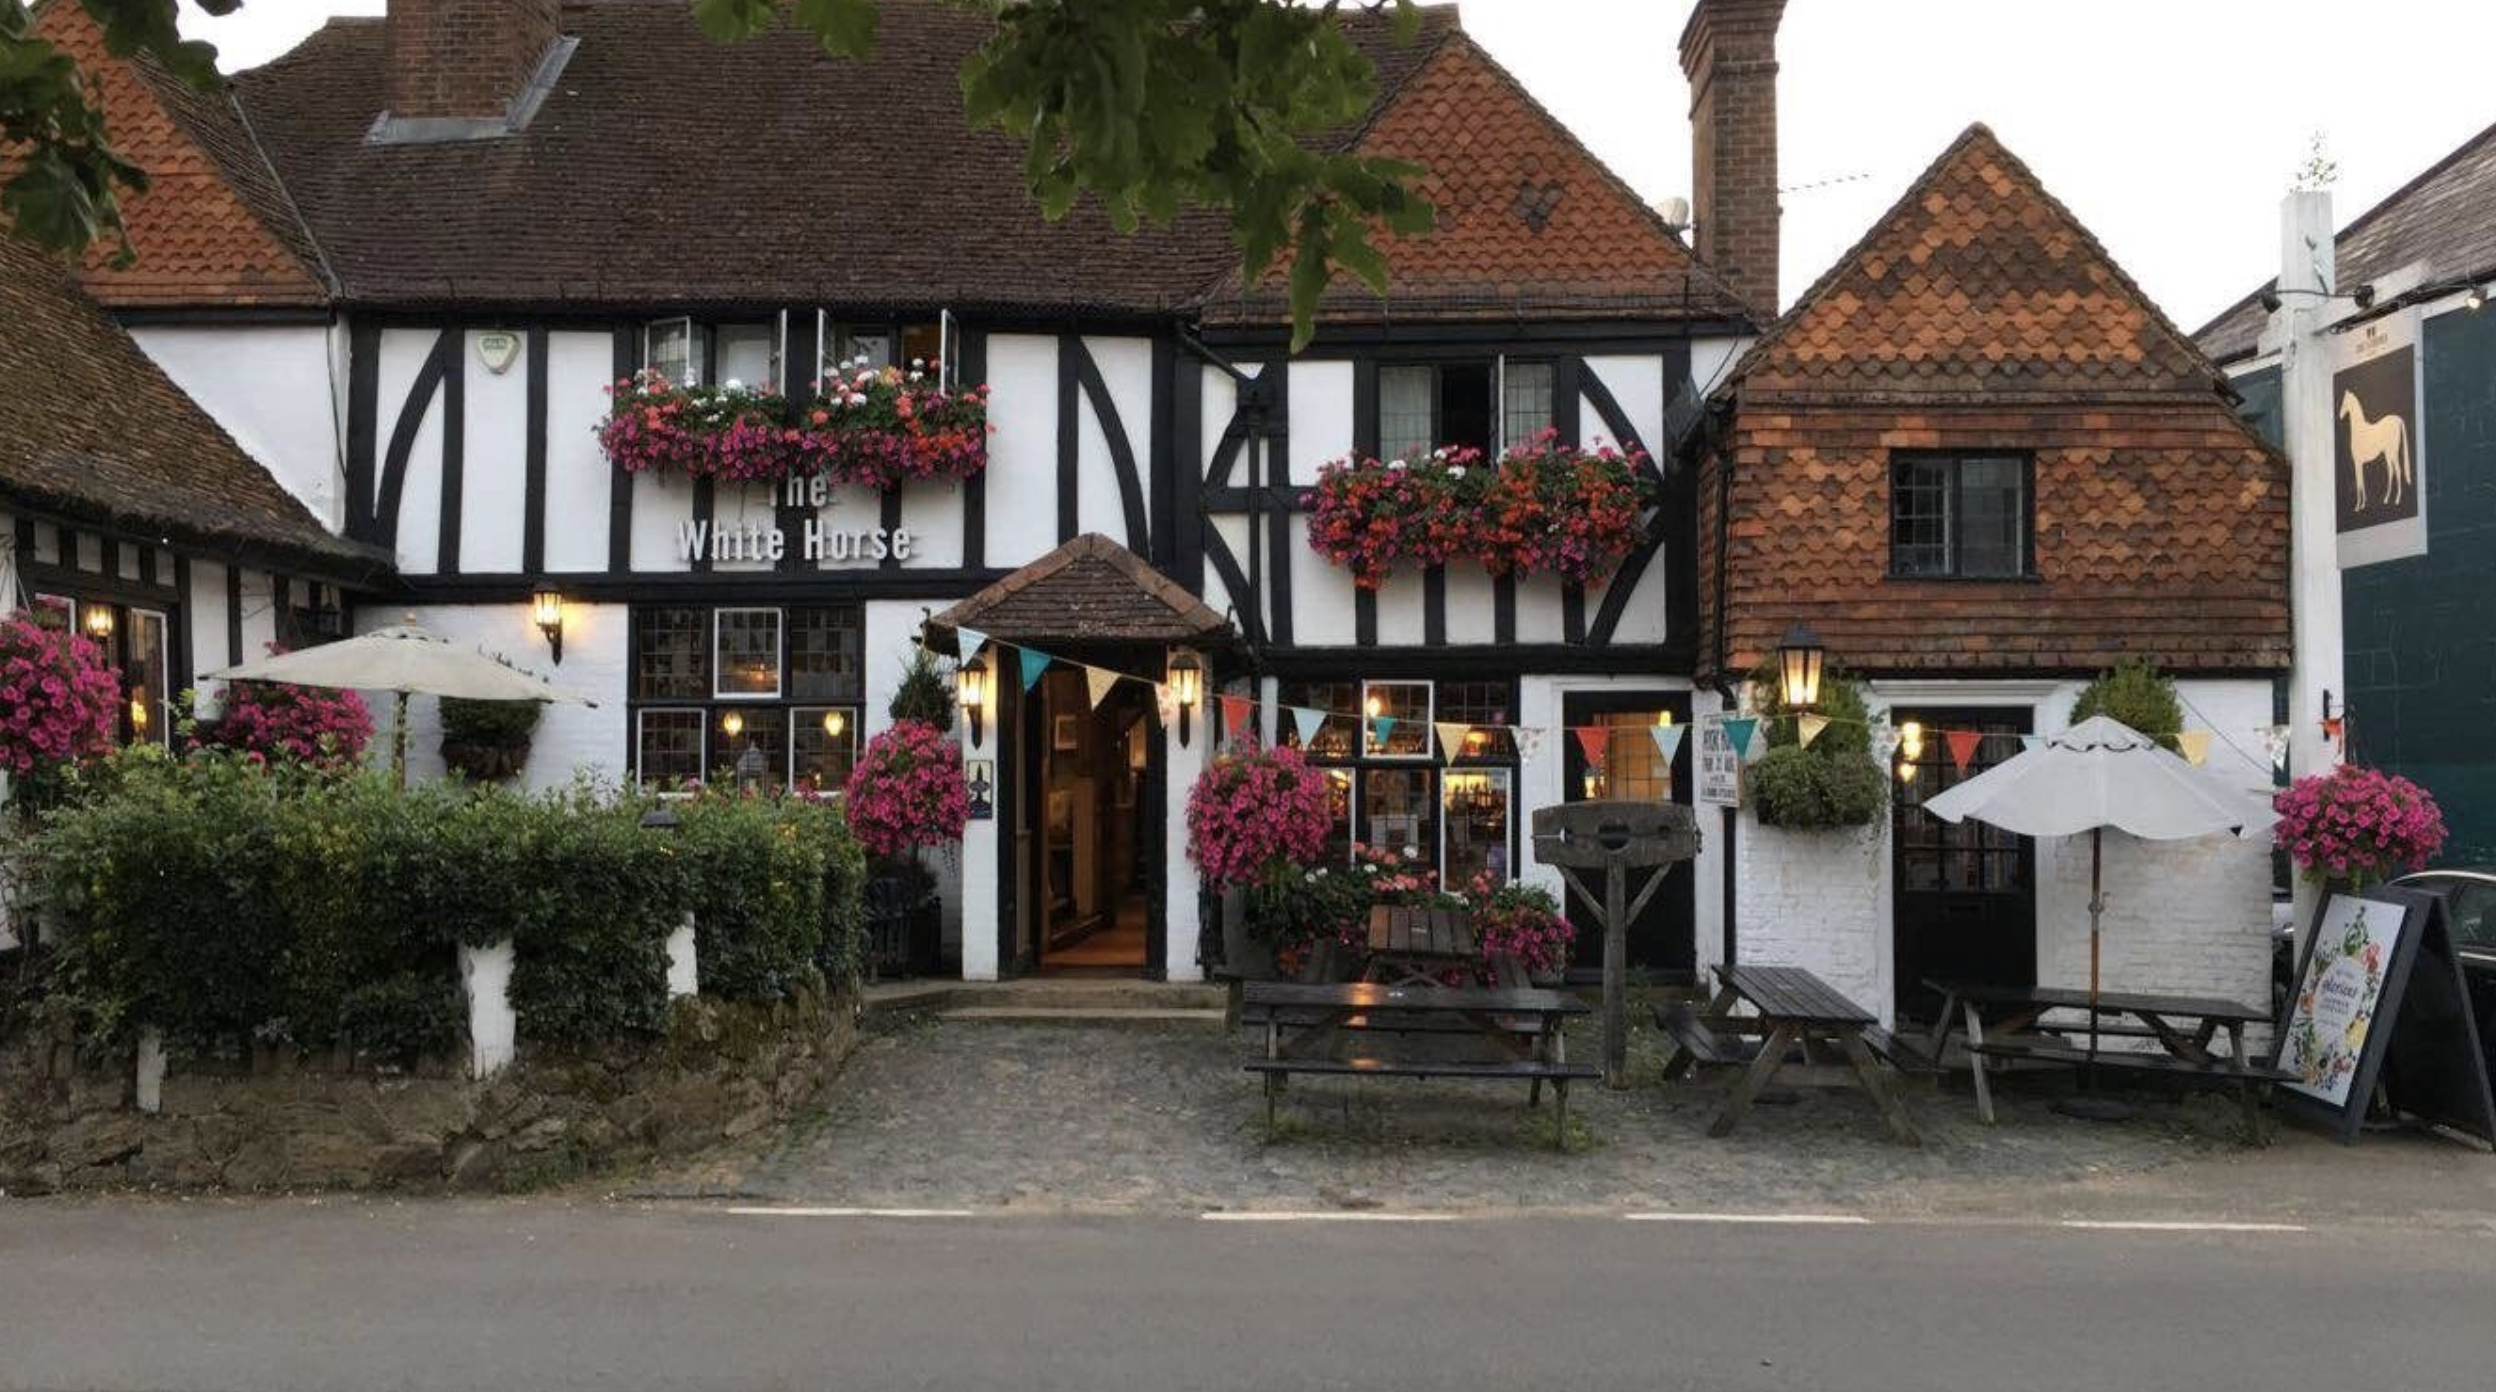 An exterior shot of the tavern where they filmed the movie